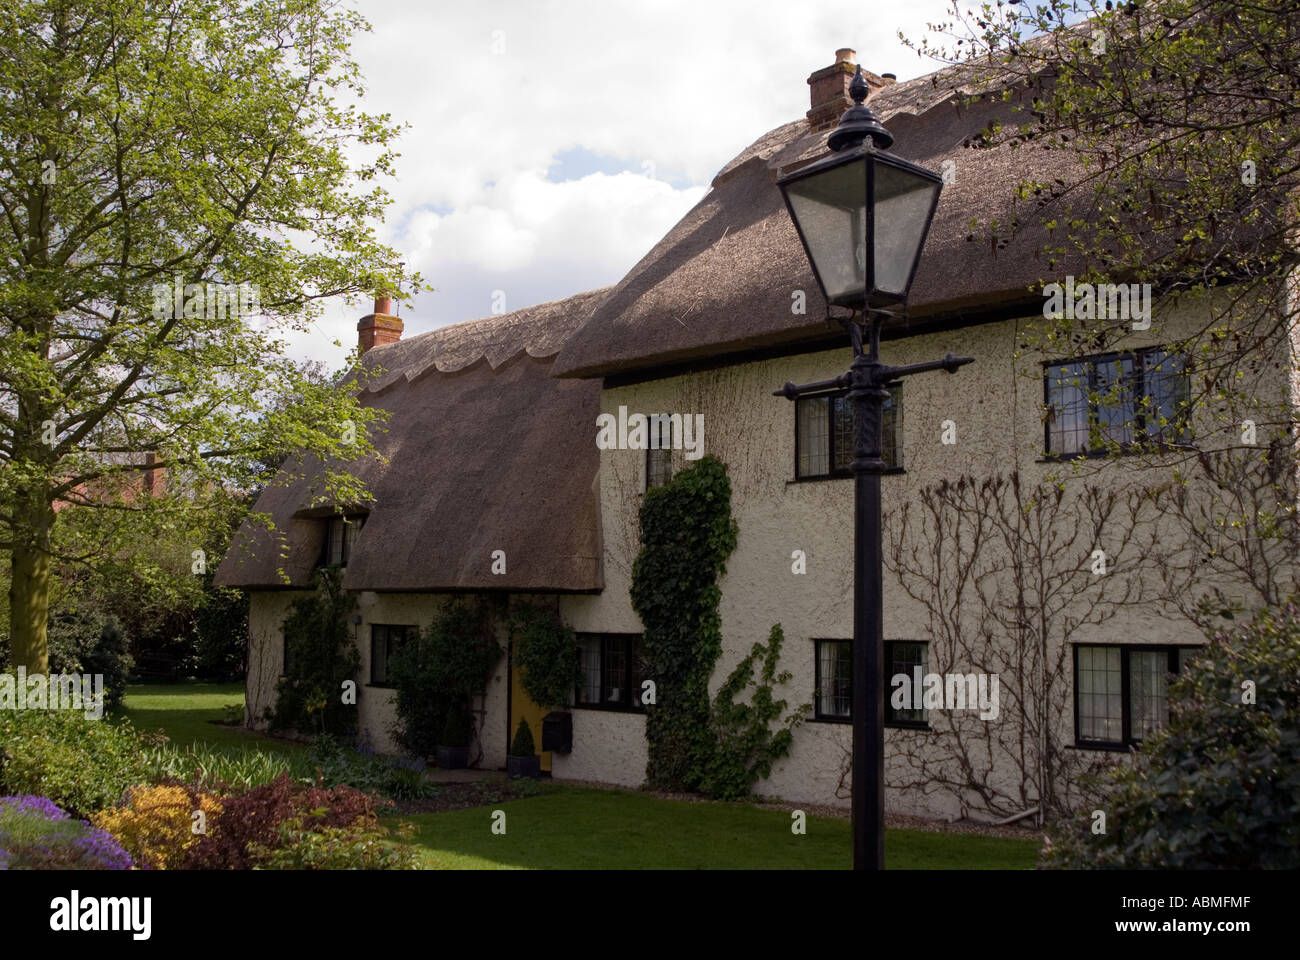 A traditional country house in Milton Keynes Village - Stock Image